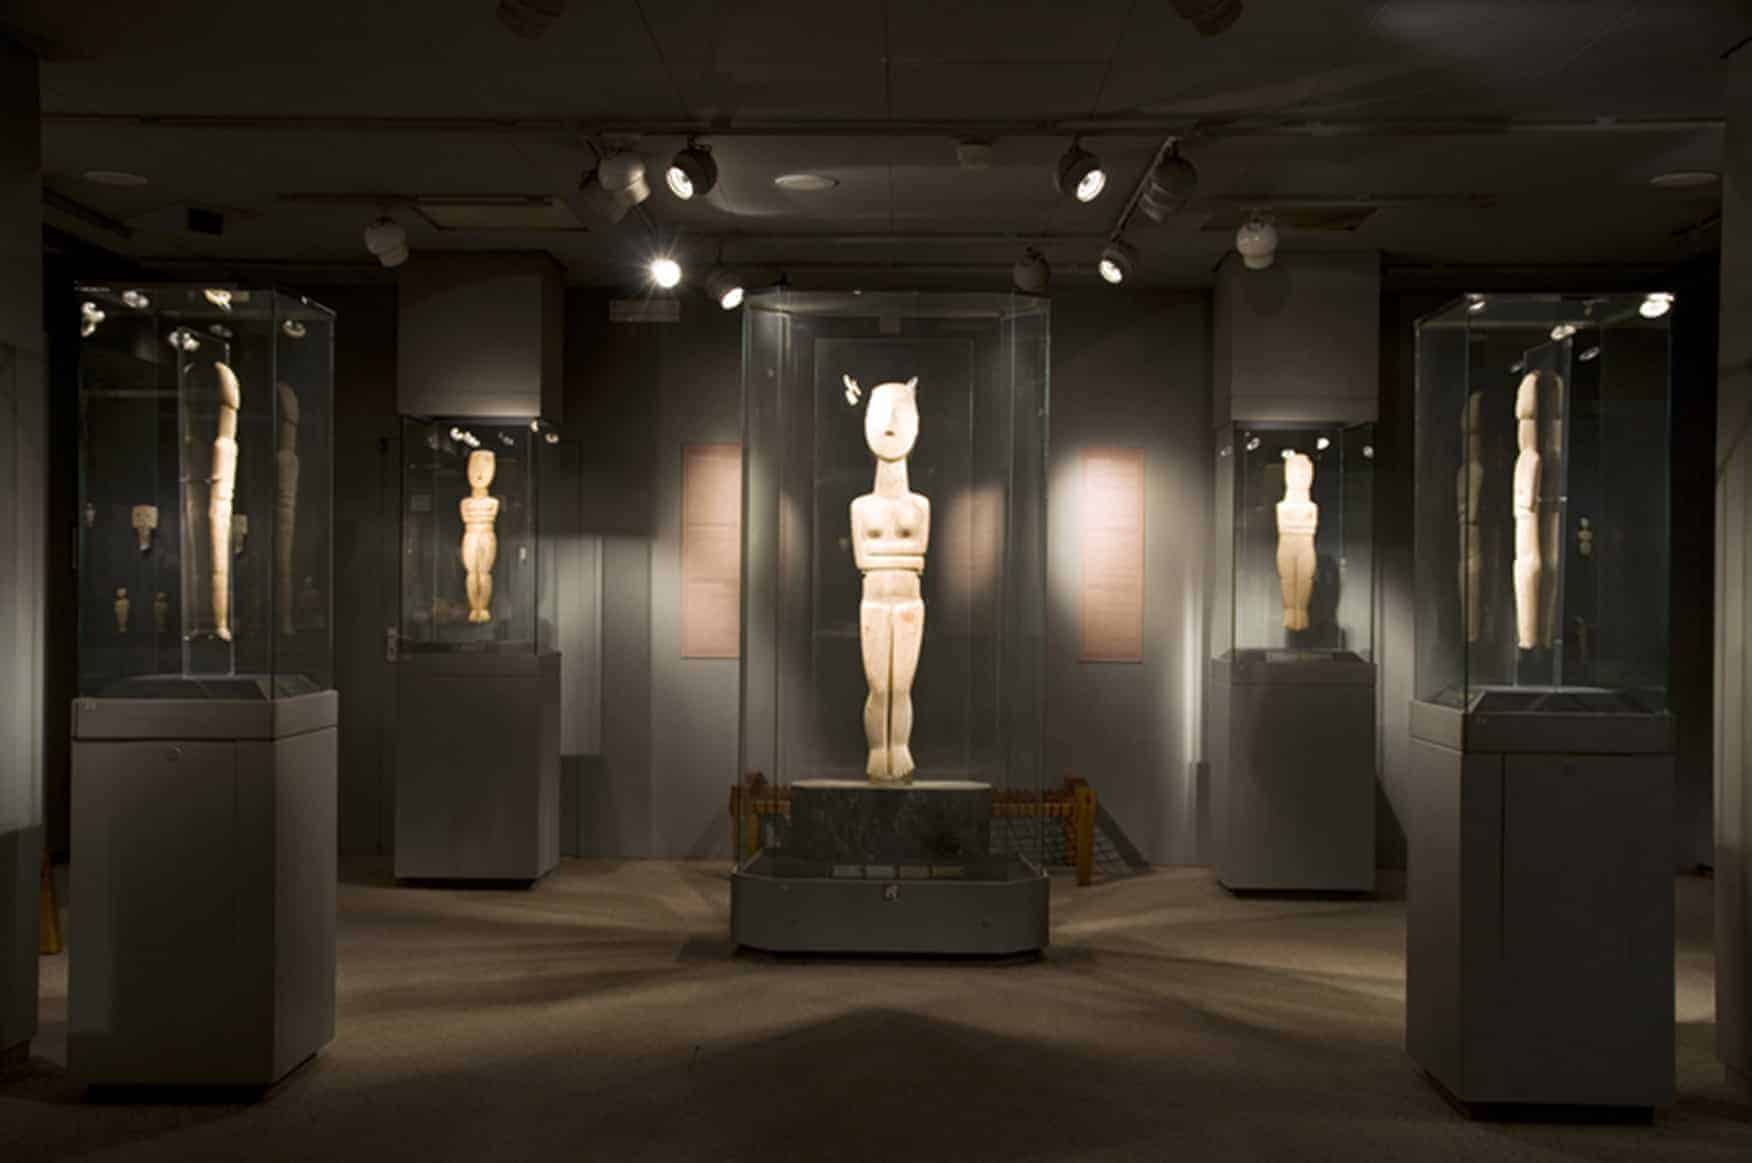 30th anniversary celebrates Cycladic life 5000 years ago 44